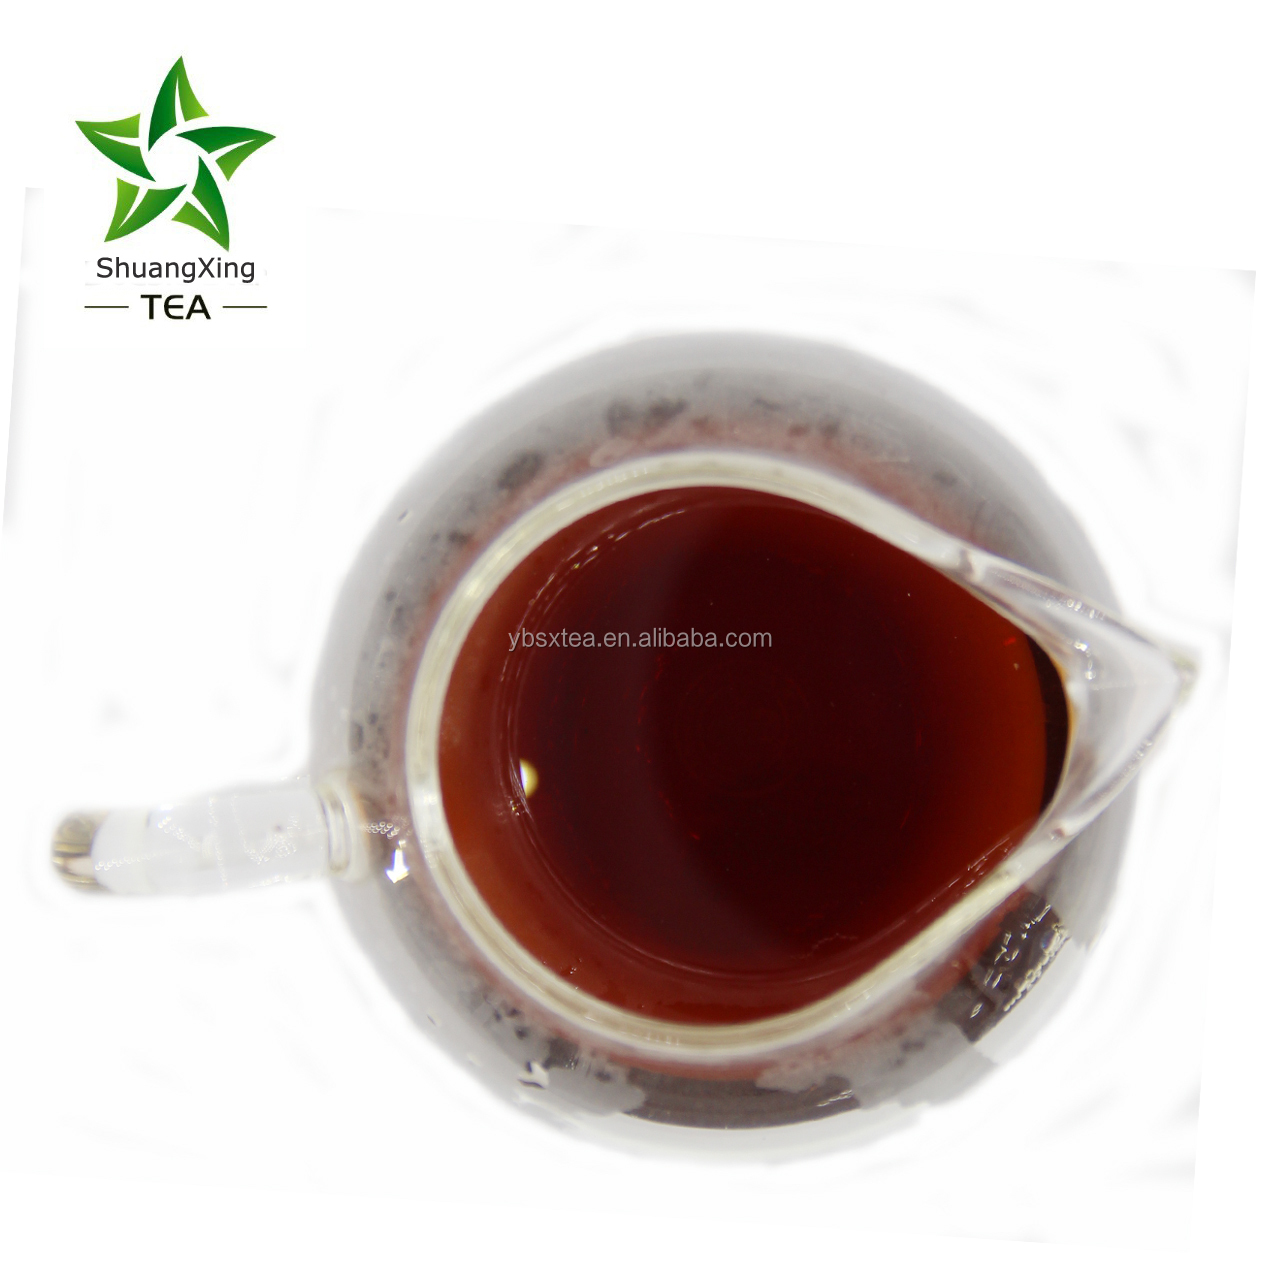 CTC Black tea China black tea hotsale black tea cheap price